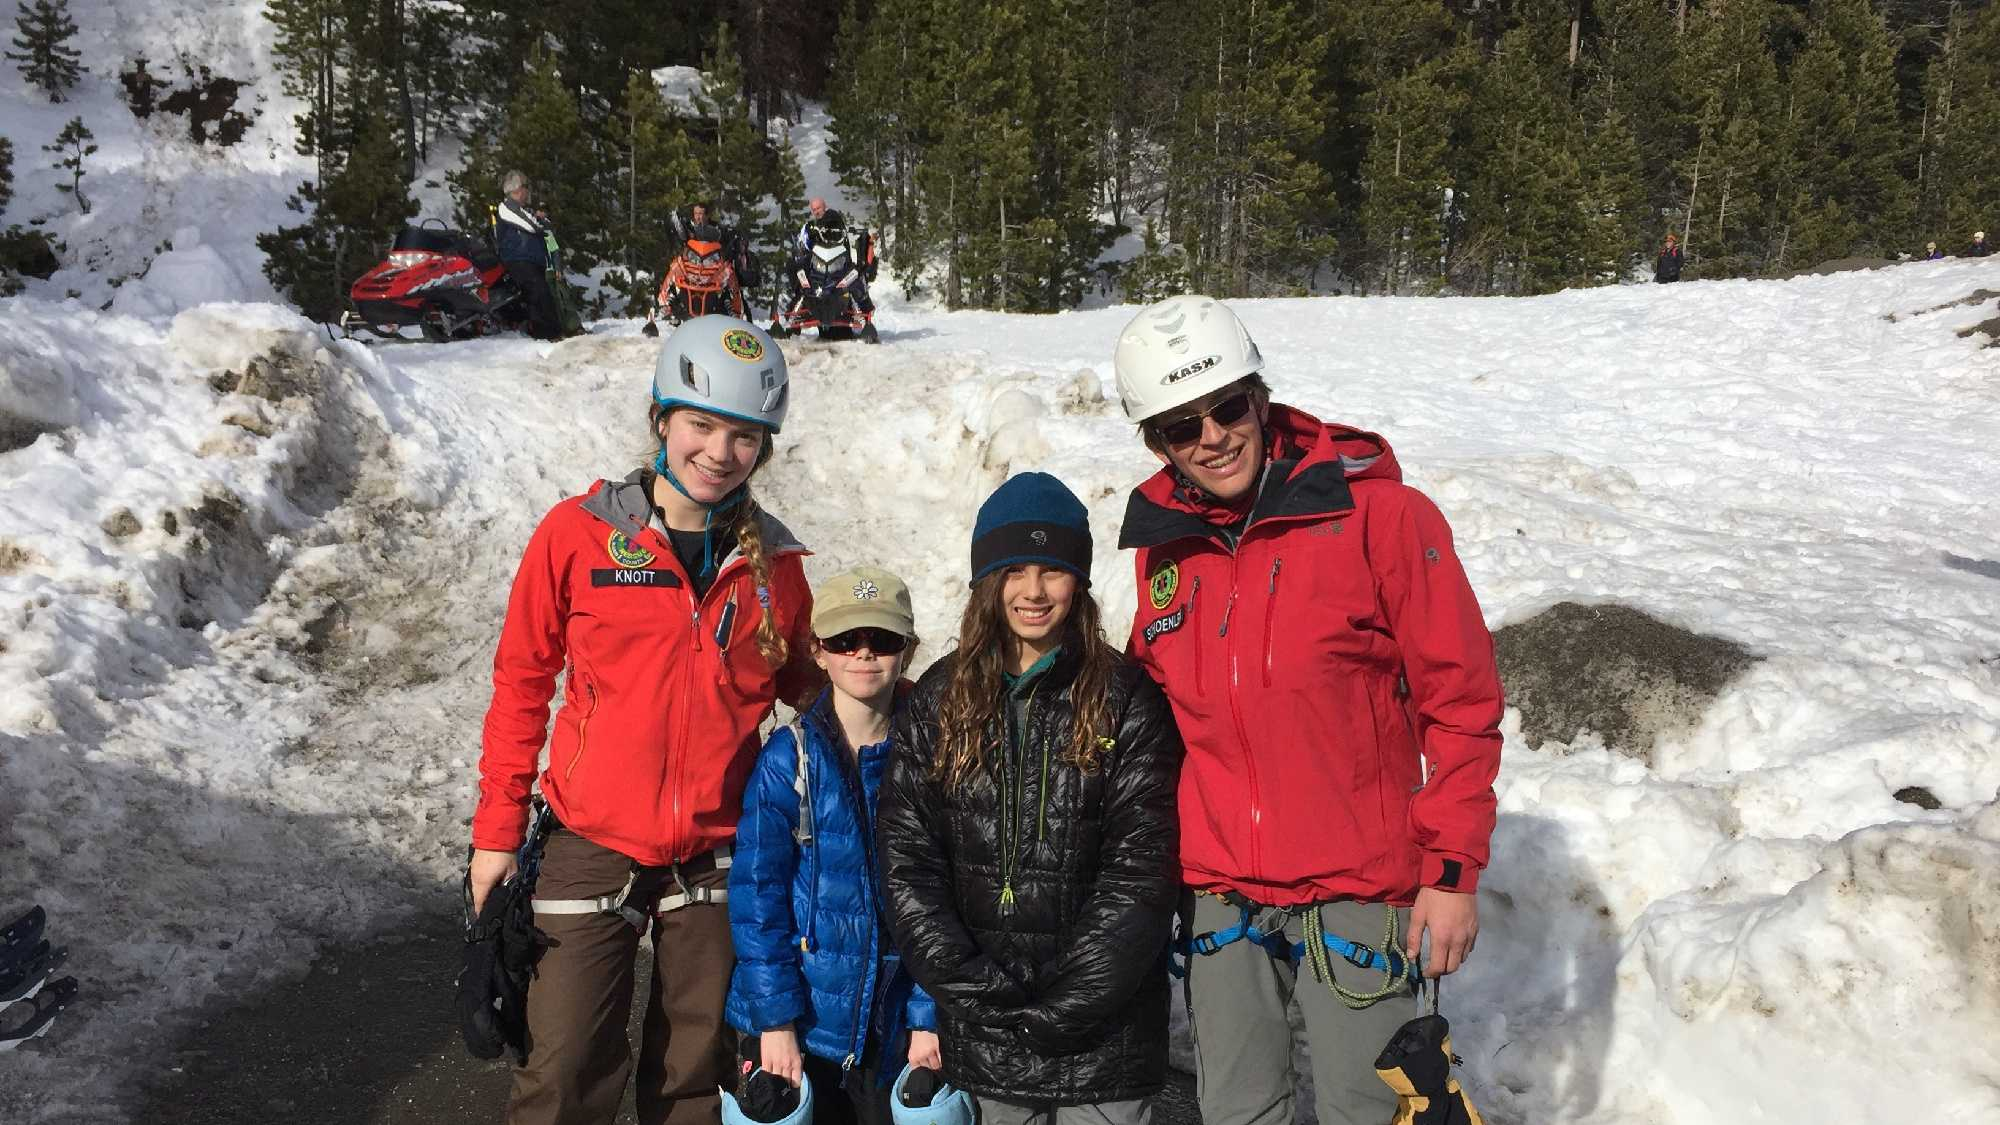 Marin County Search and Rescue youth member Lauren Knott and Malcolm Schoenlien pose with 10-year-old Samantha White and her friend on Sunday, Feb. 21, 2016. Crews rescued Samantha after she fell into a hole near the Boreal Ski Resort, in the Castle Peak area.